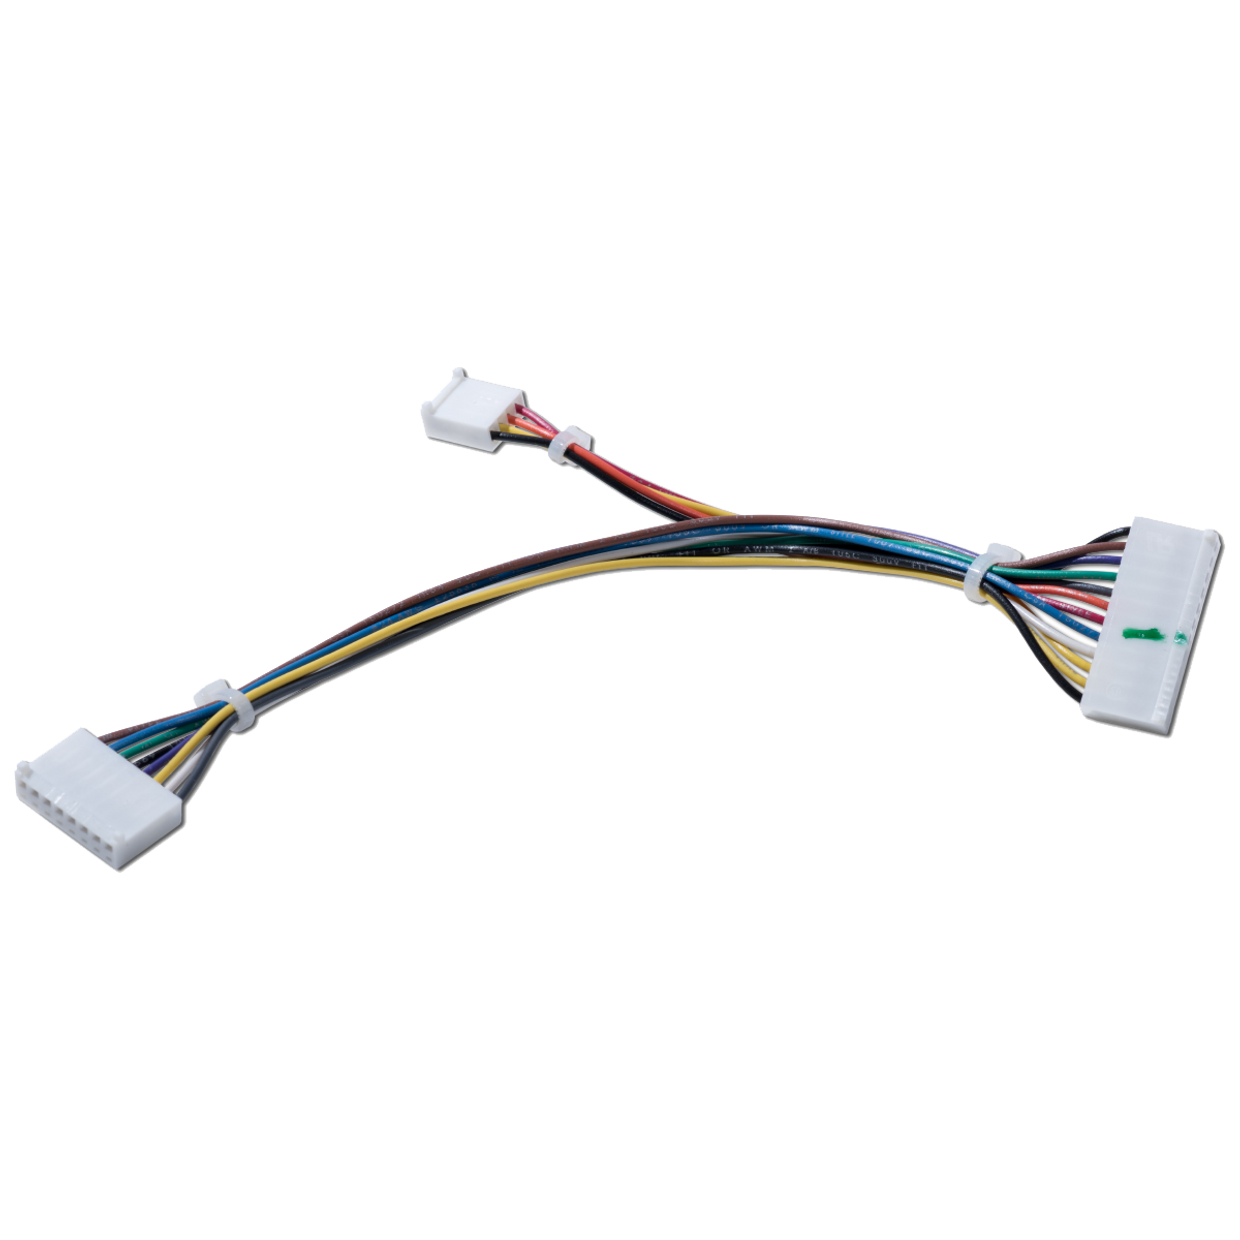 041a6335 Wire Harness Kit High Voltage Liftmaster Ca Wiring Kits